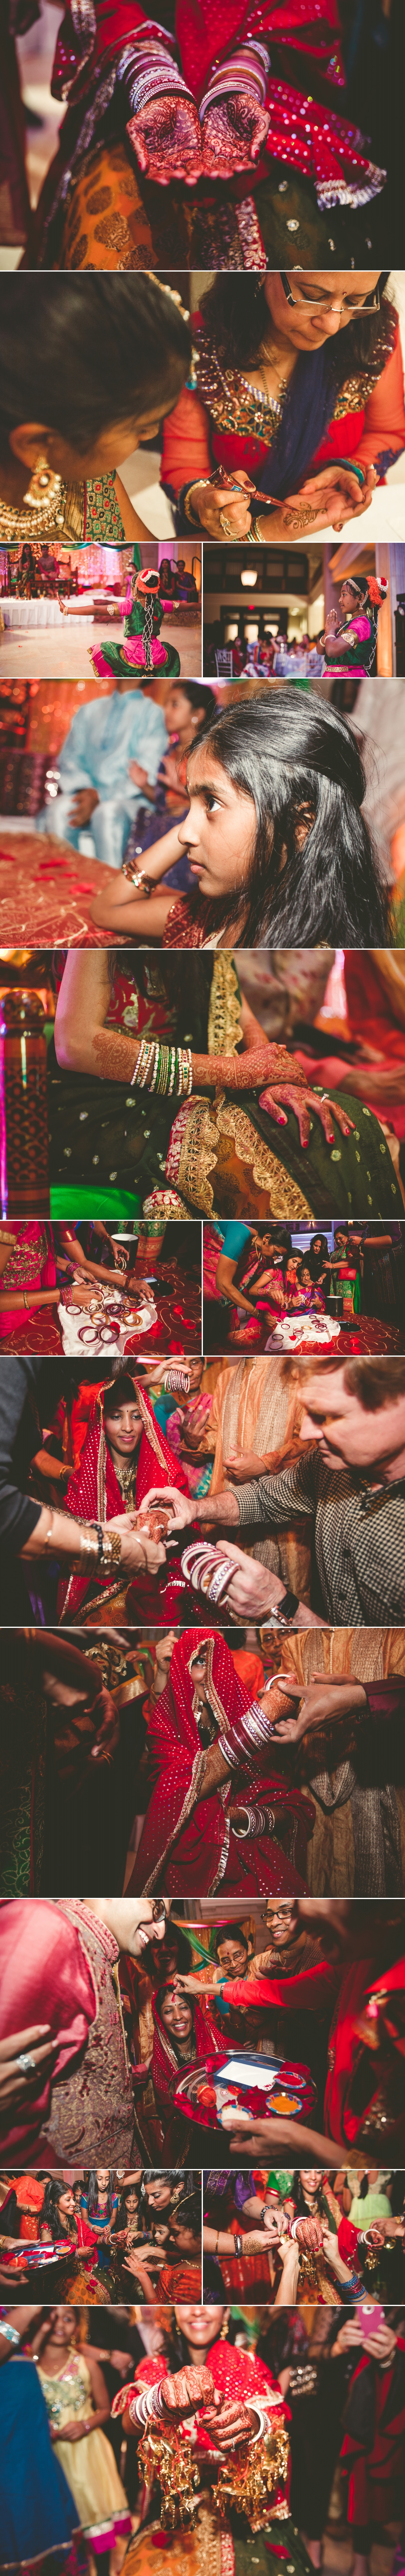 jason_domingues_photography_best_photographer_indian_wedding_st_louis_kansas_city_marriott_grand_1.jpg